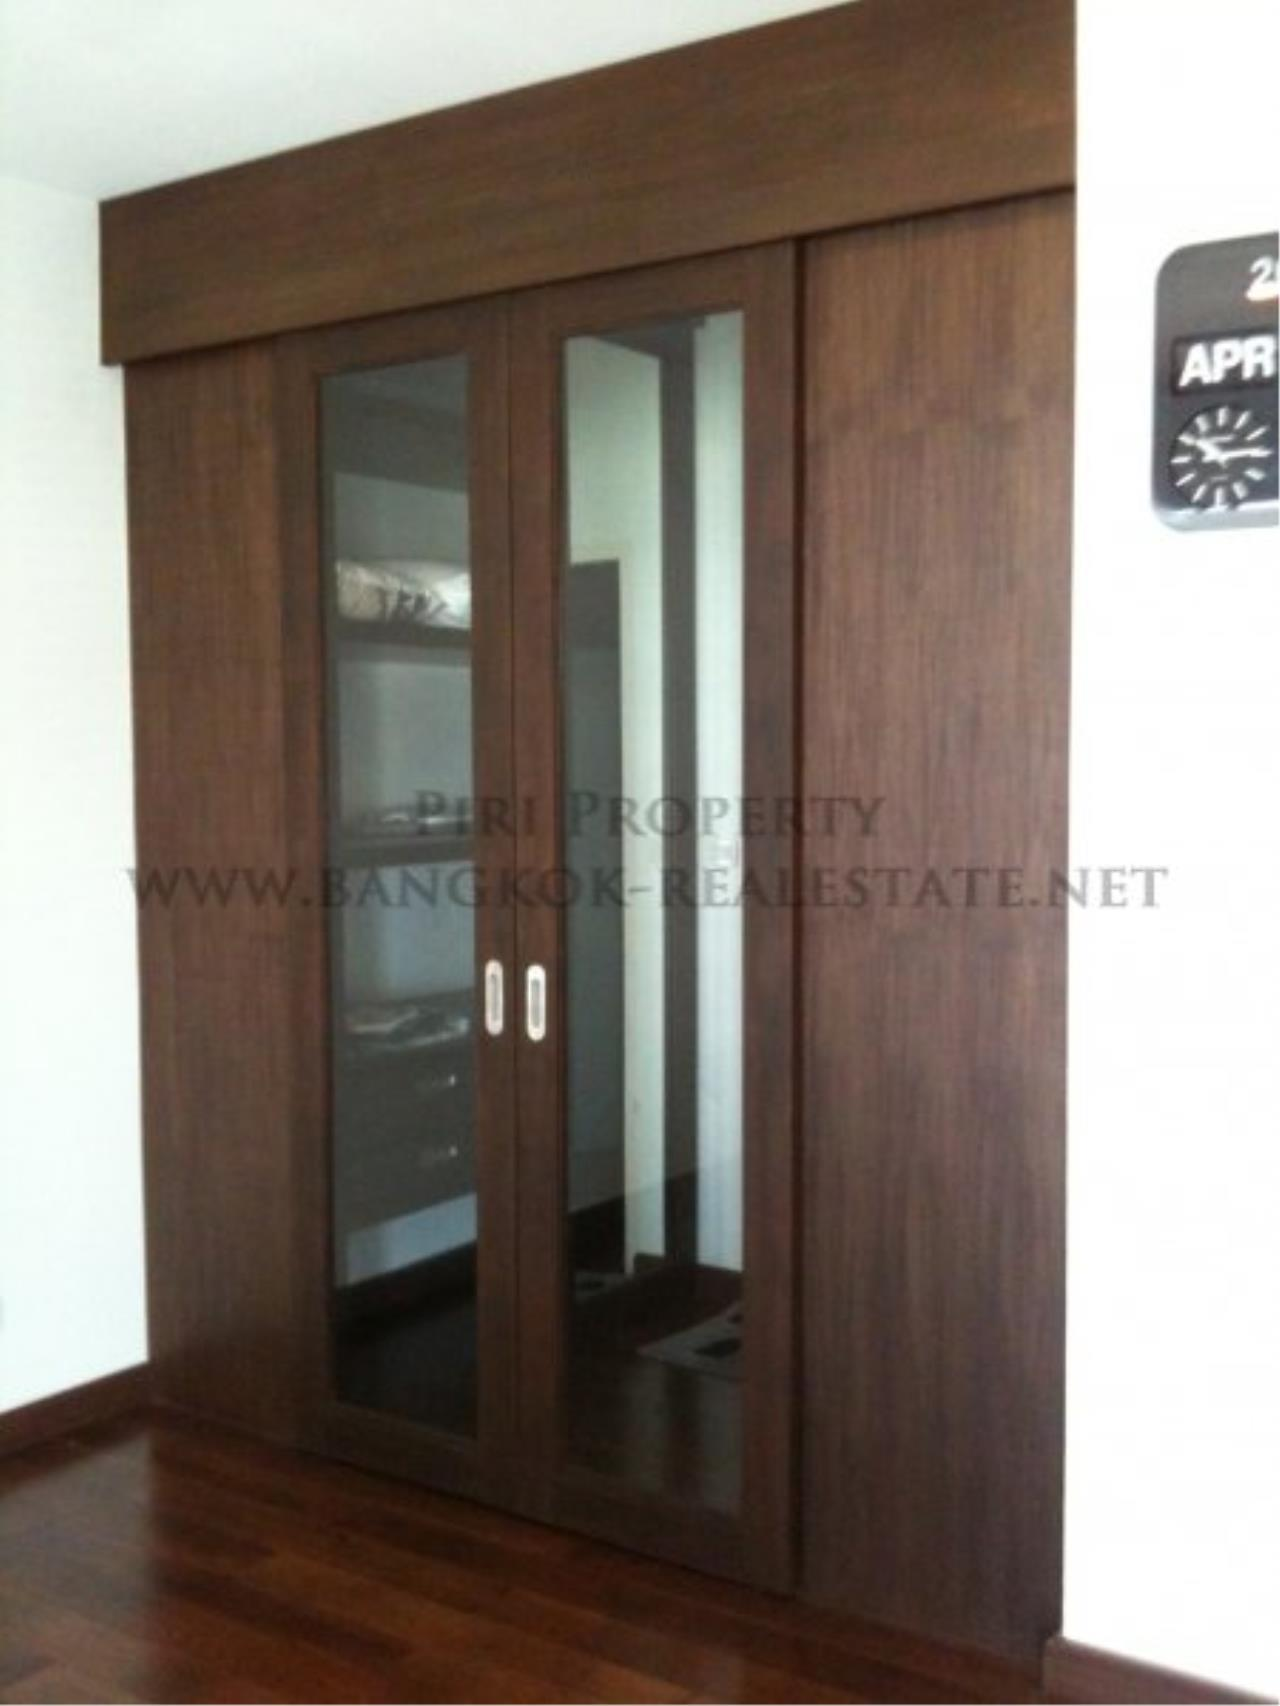 Piri Property Agency's 1 Bedroom condo - Noble Reflex in Ari 2